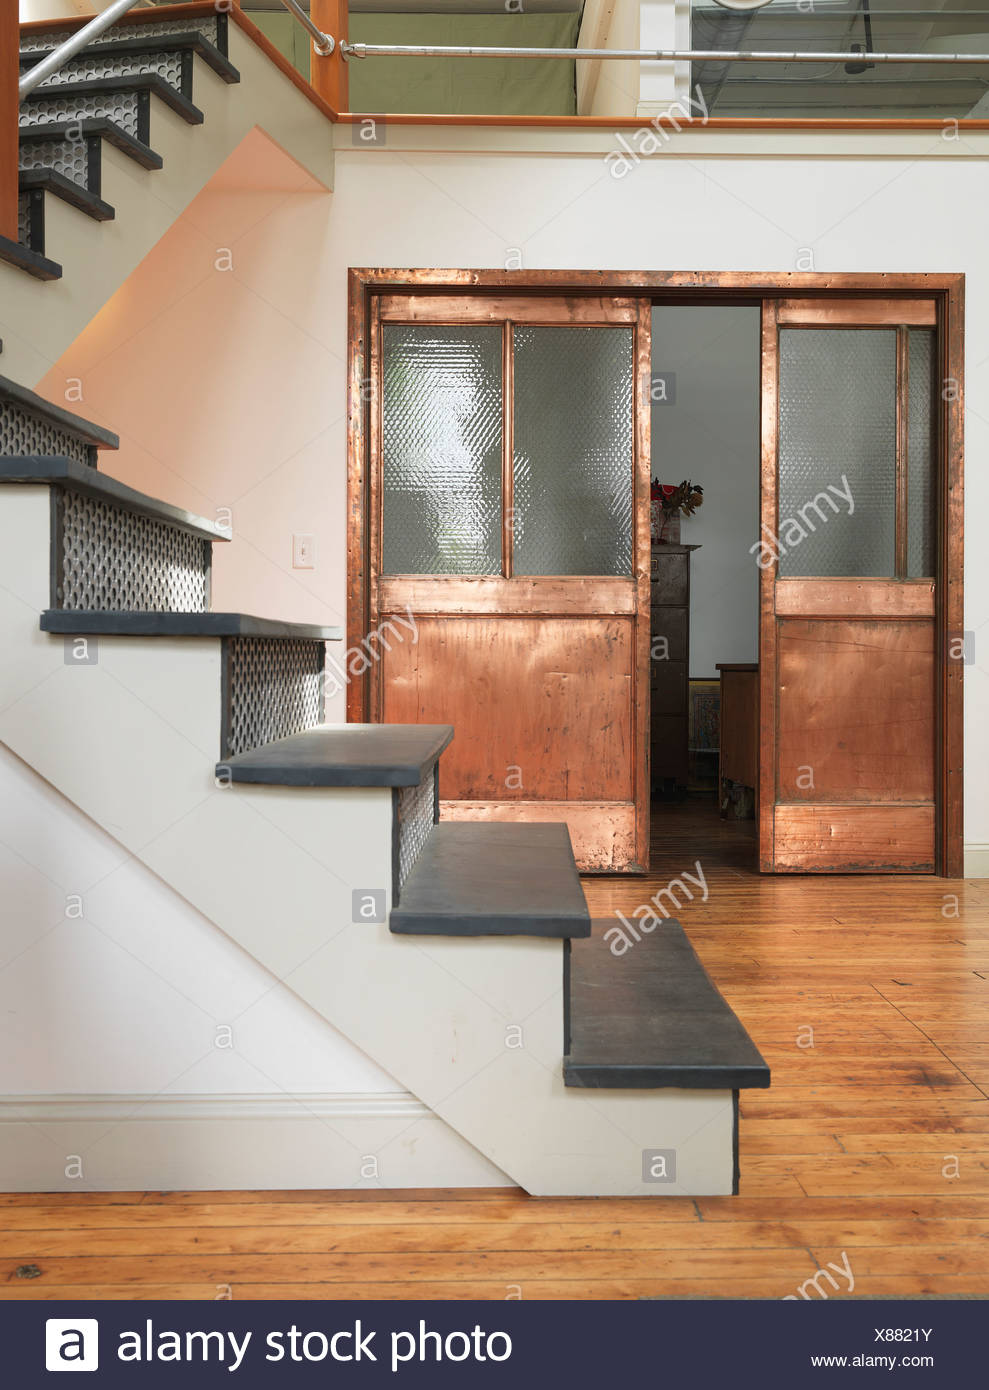 reused doors and steps - Stock Image